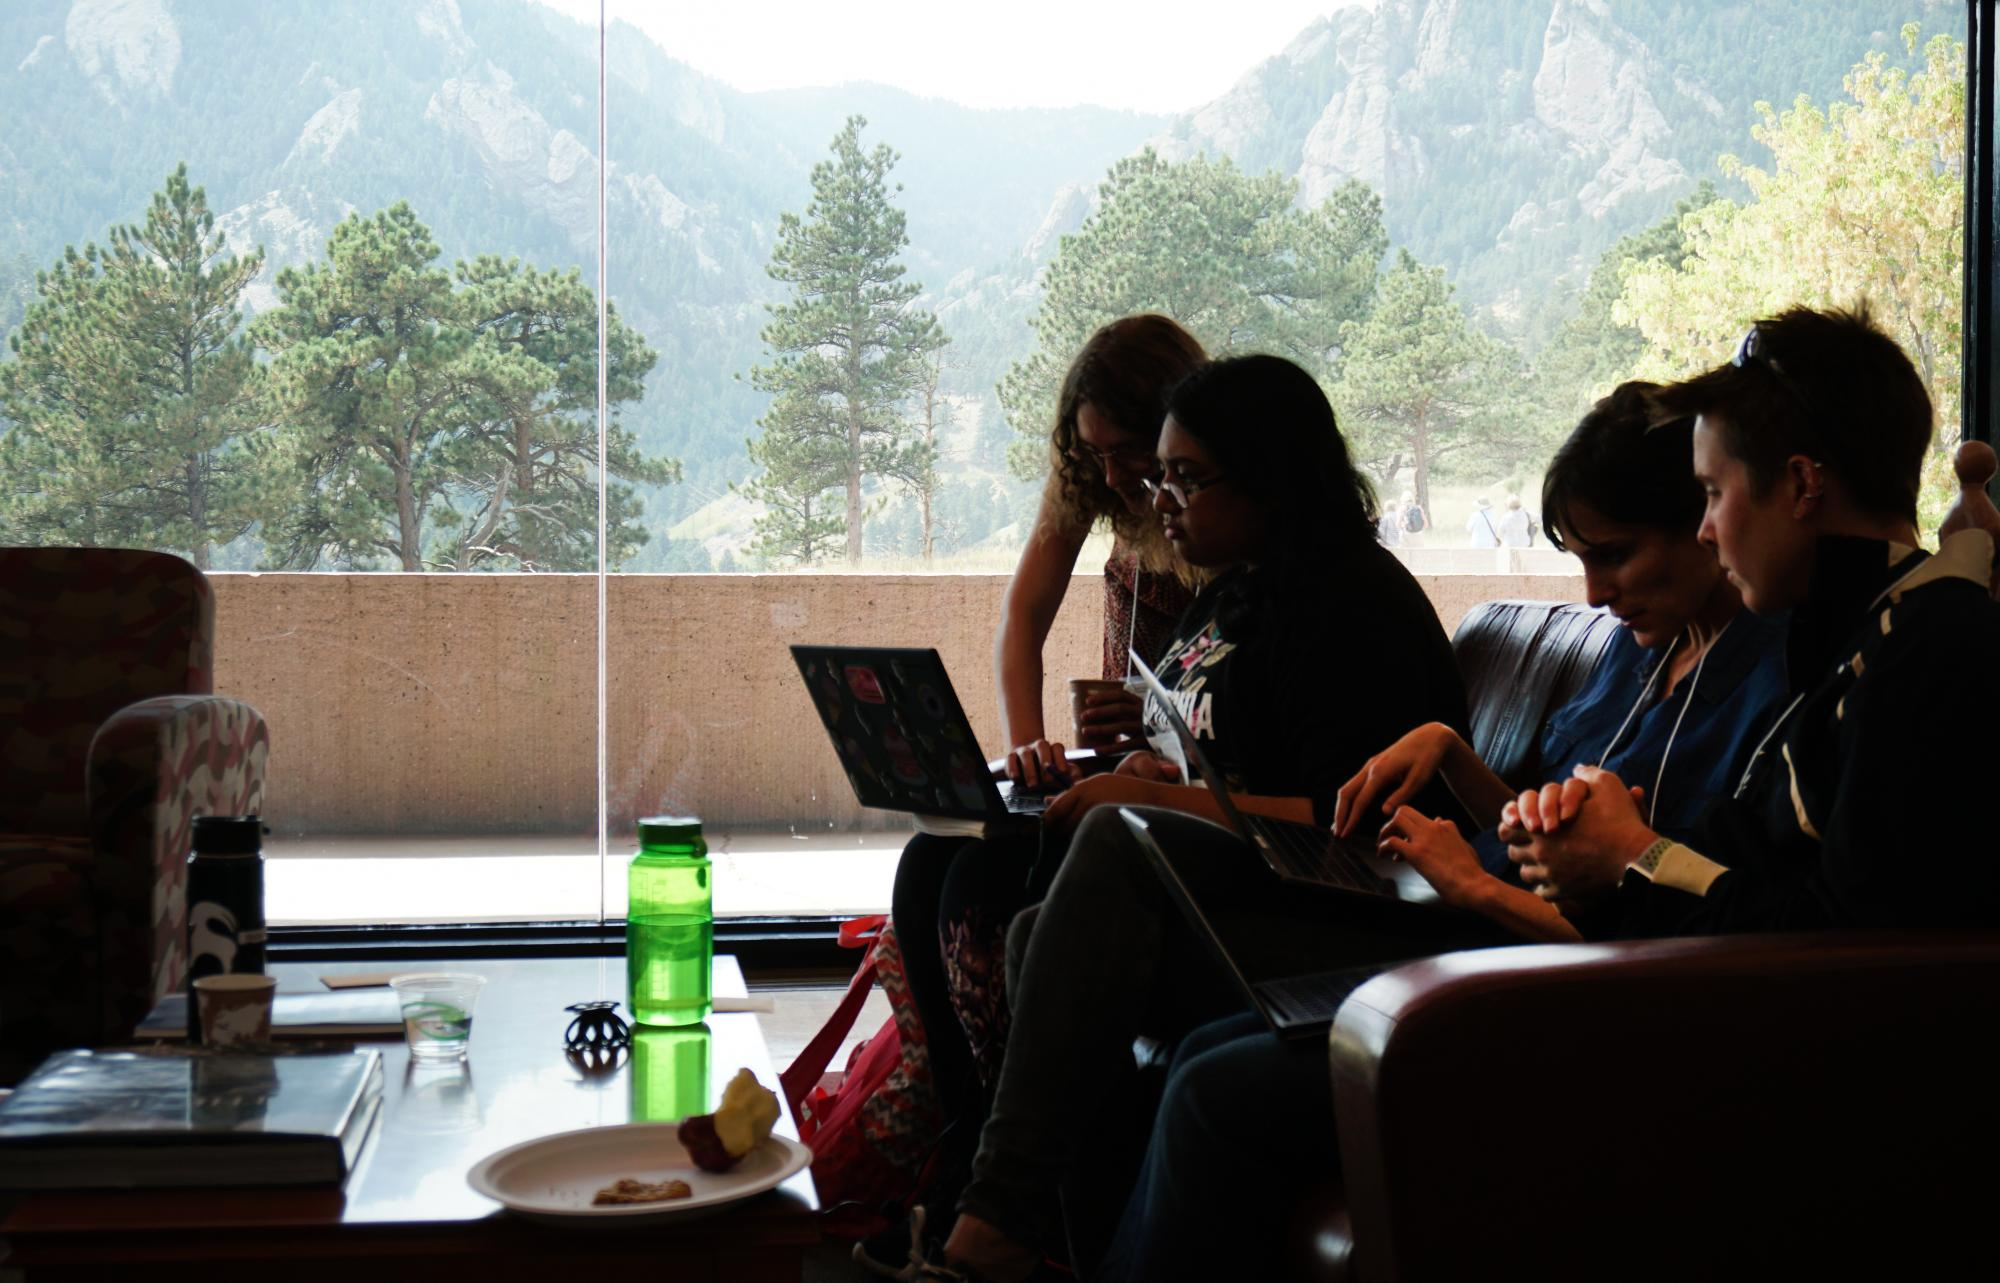 Four hackathon participants discuss their work, with Boulder's Flatirons in the background.